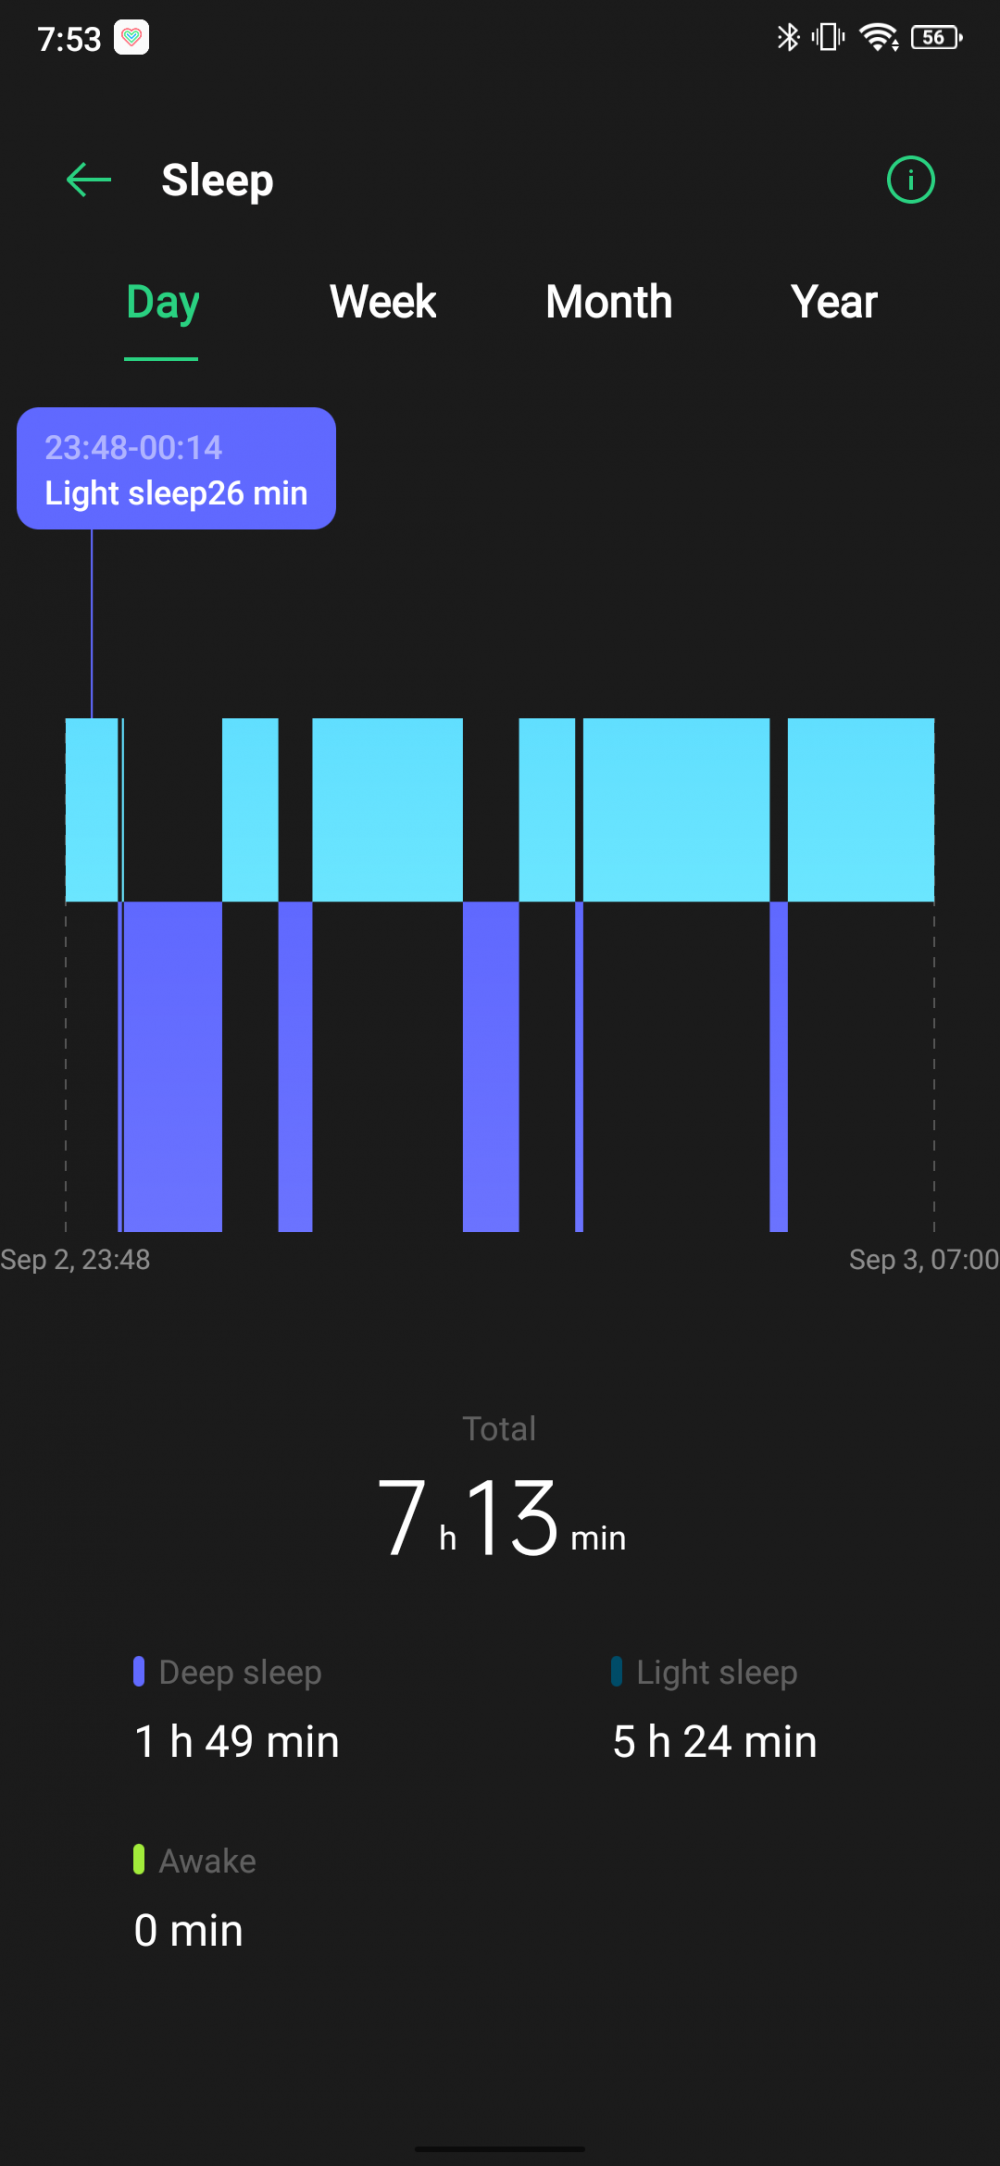 A screenshot of sleep tracking from the HeyTap Health app synced with the OPPO watch